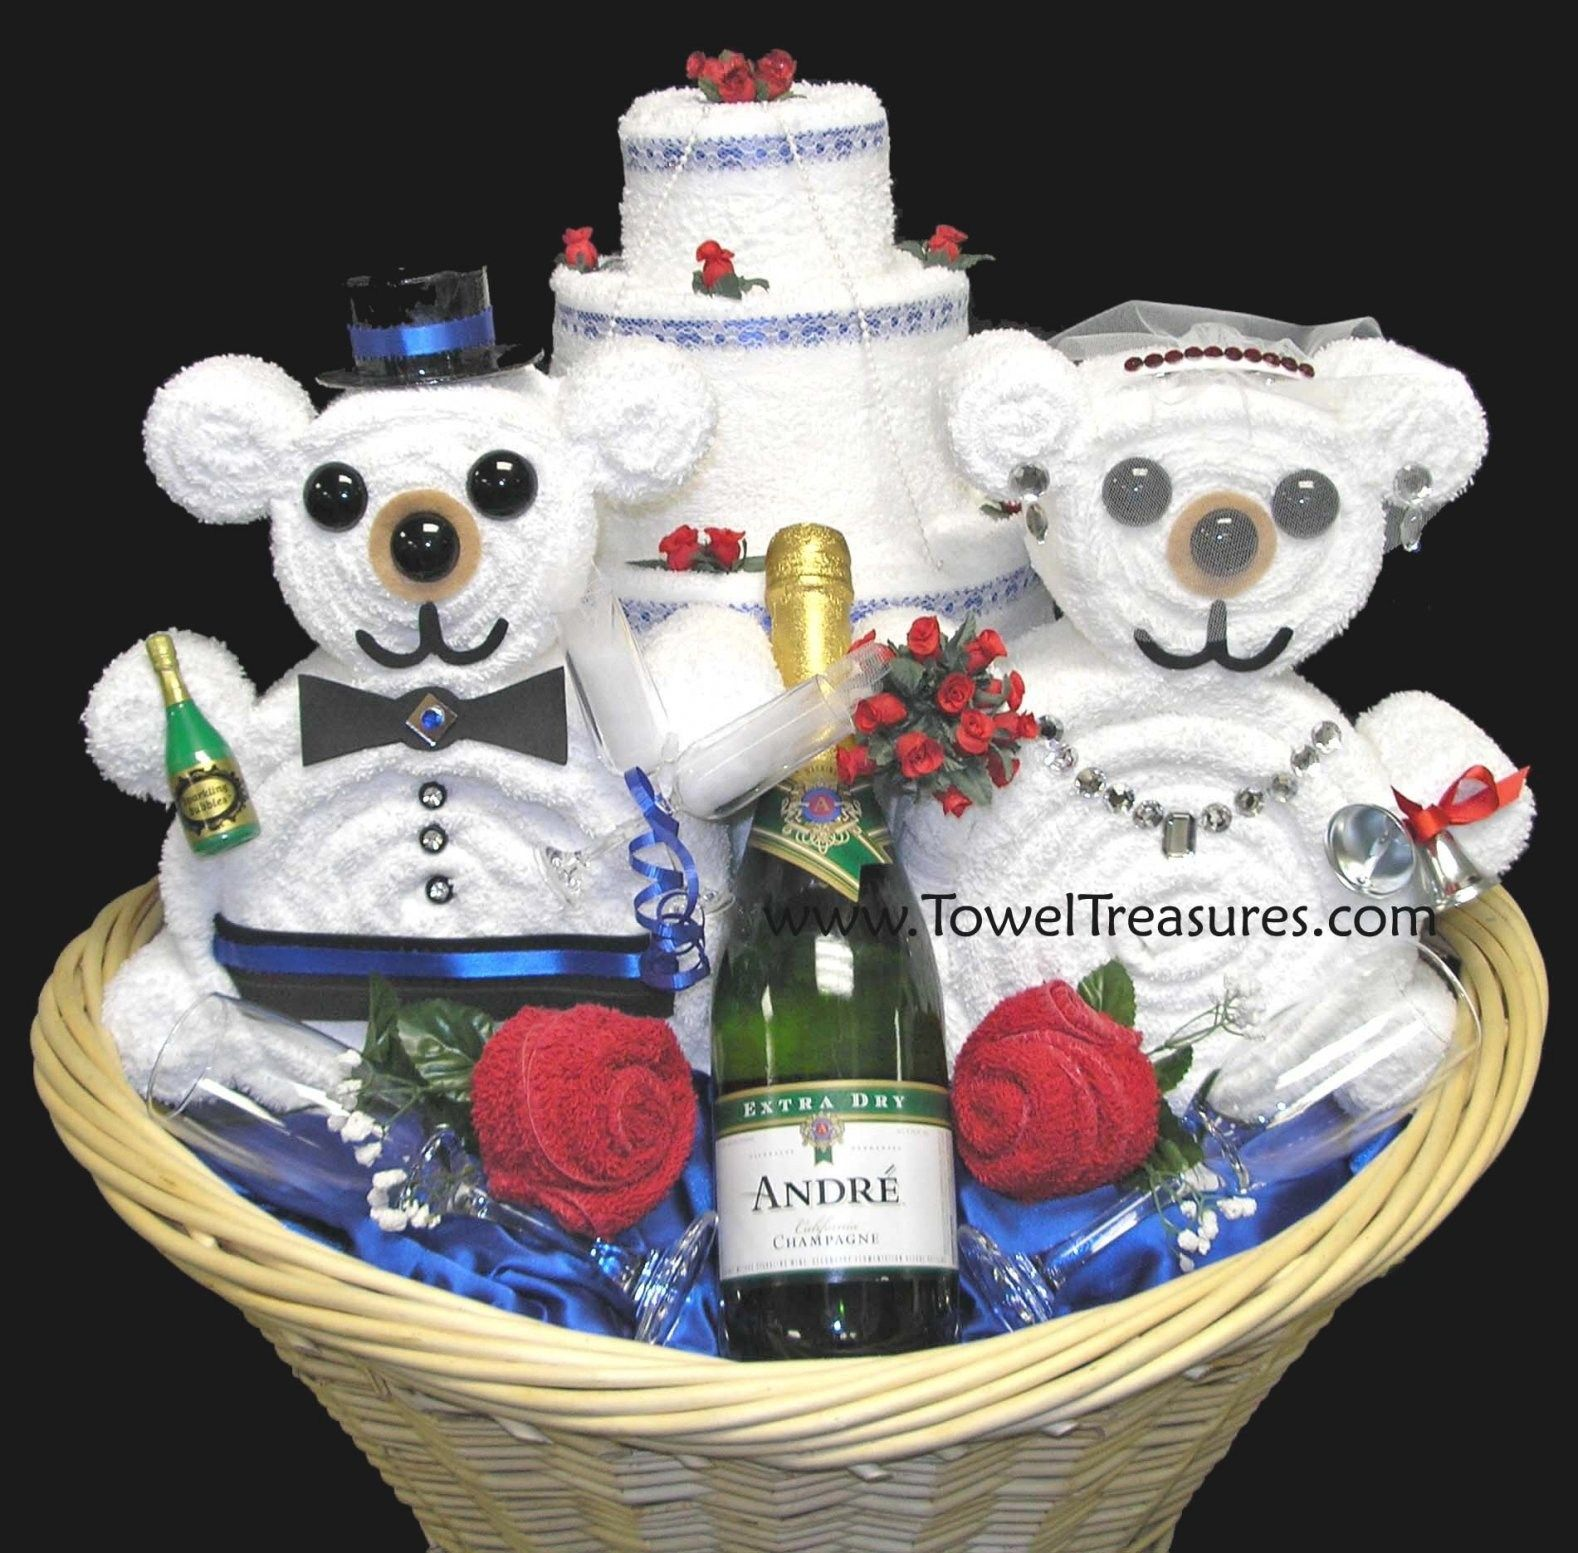 32 perfect wedding gift baskets for bride and groom with